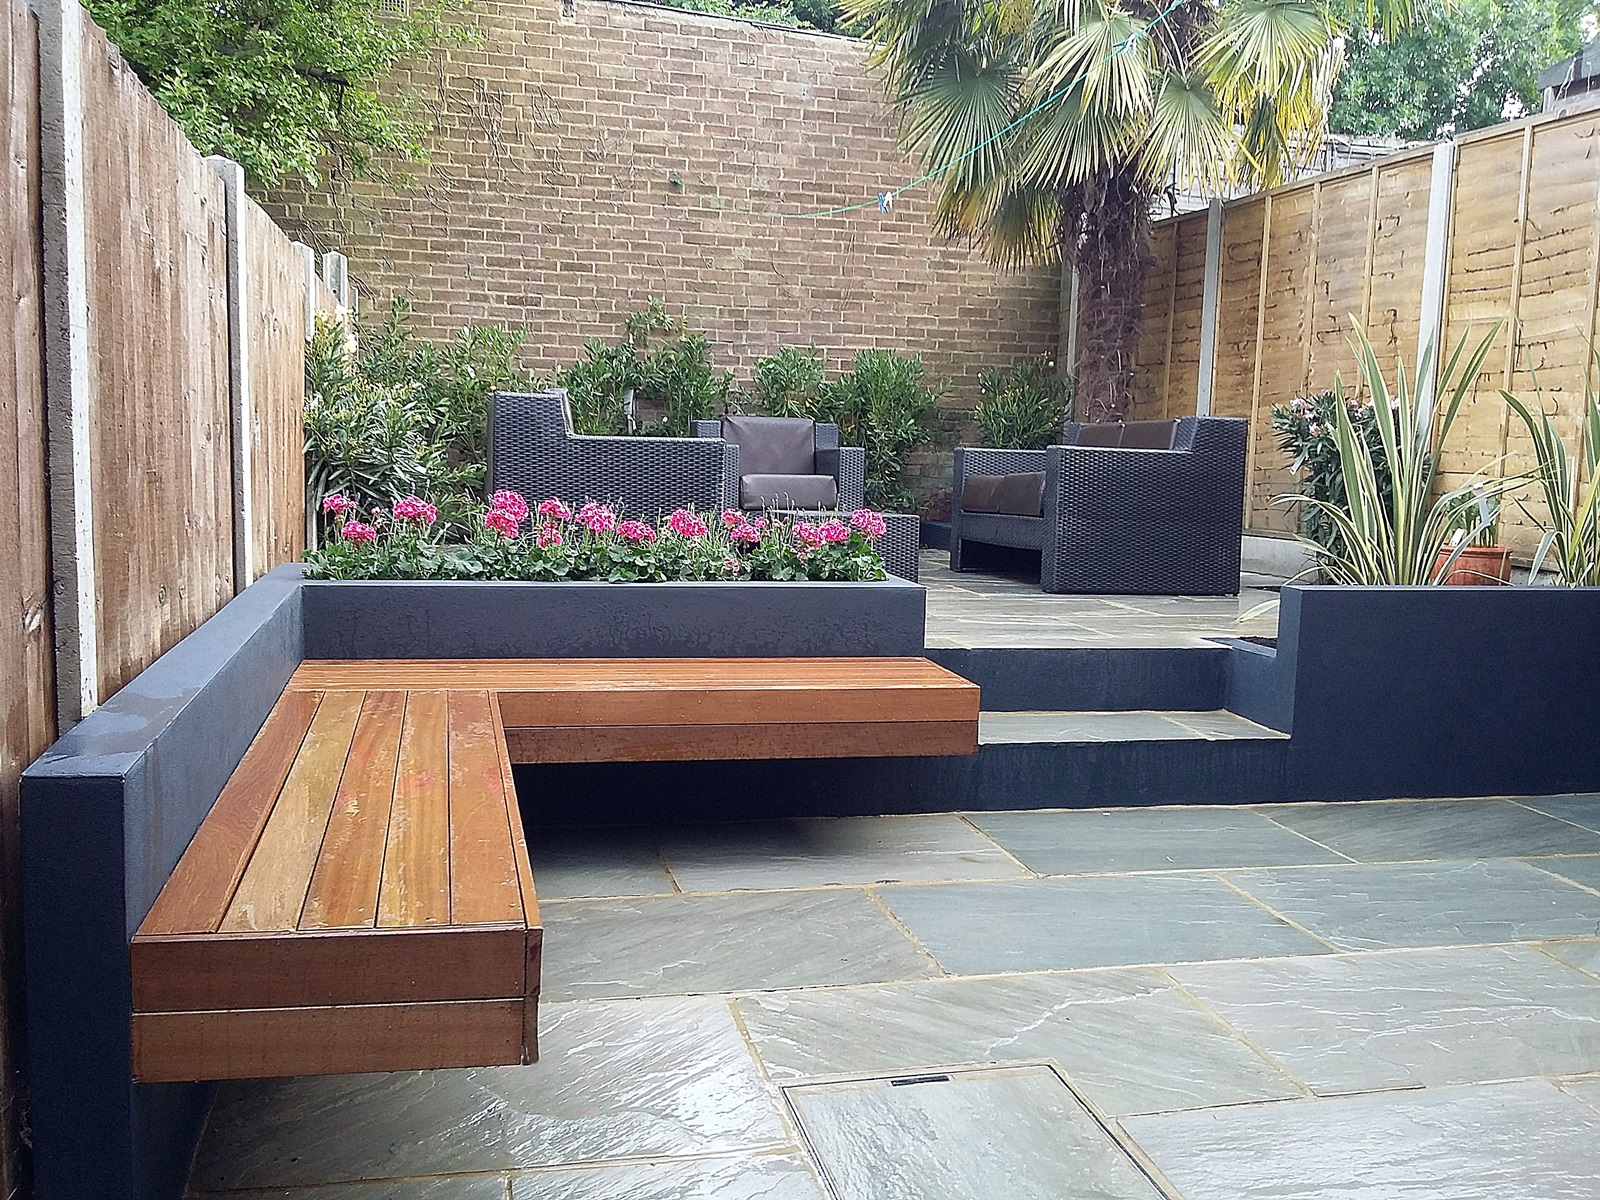 Modern garden design london natural sandstone paving patio for Small garden design uk